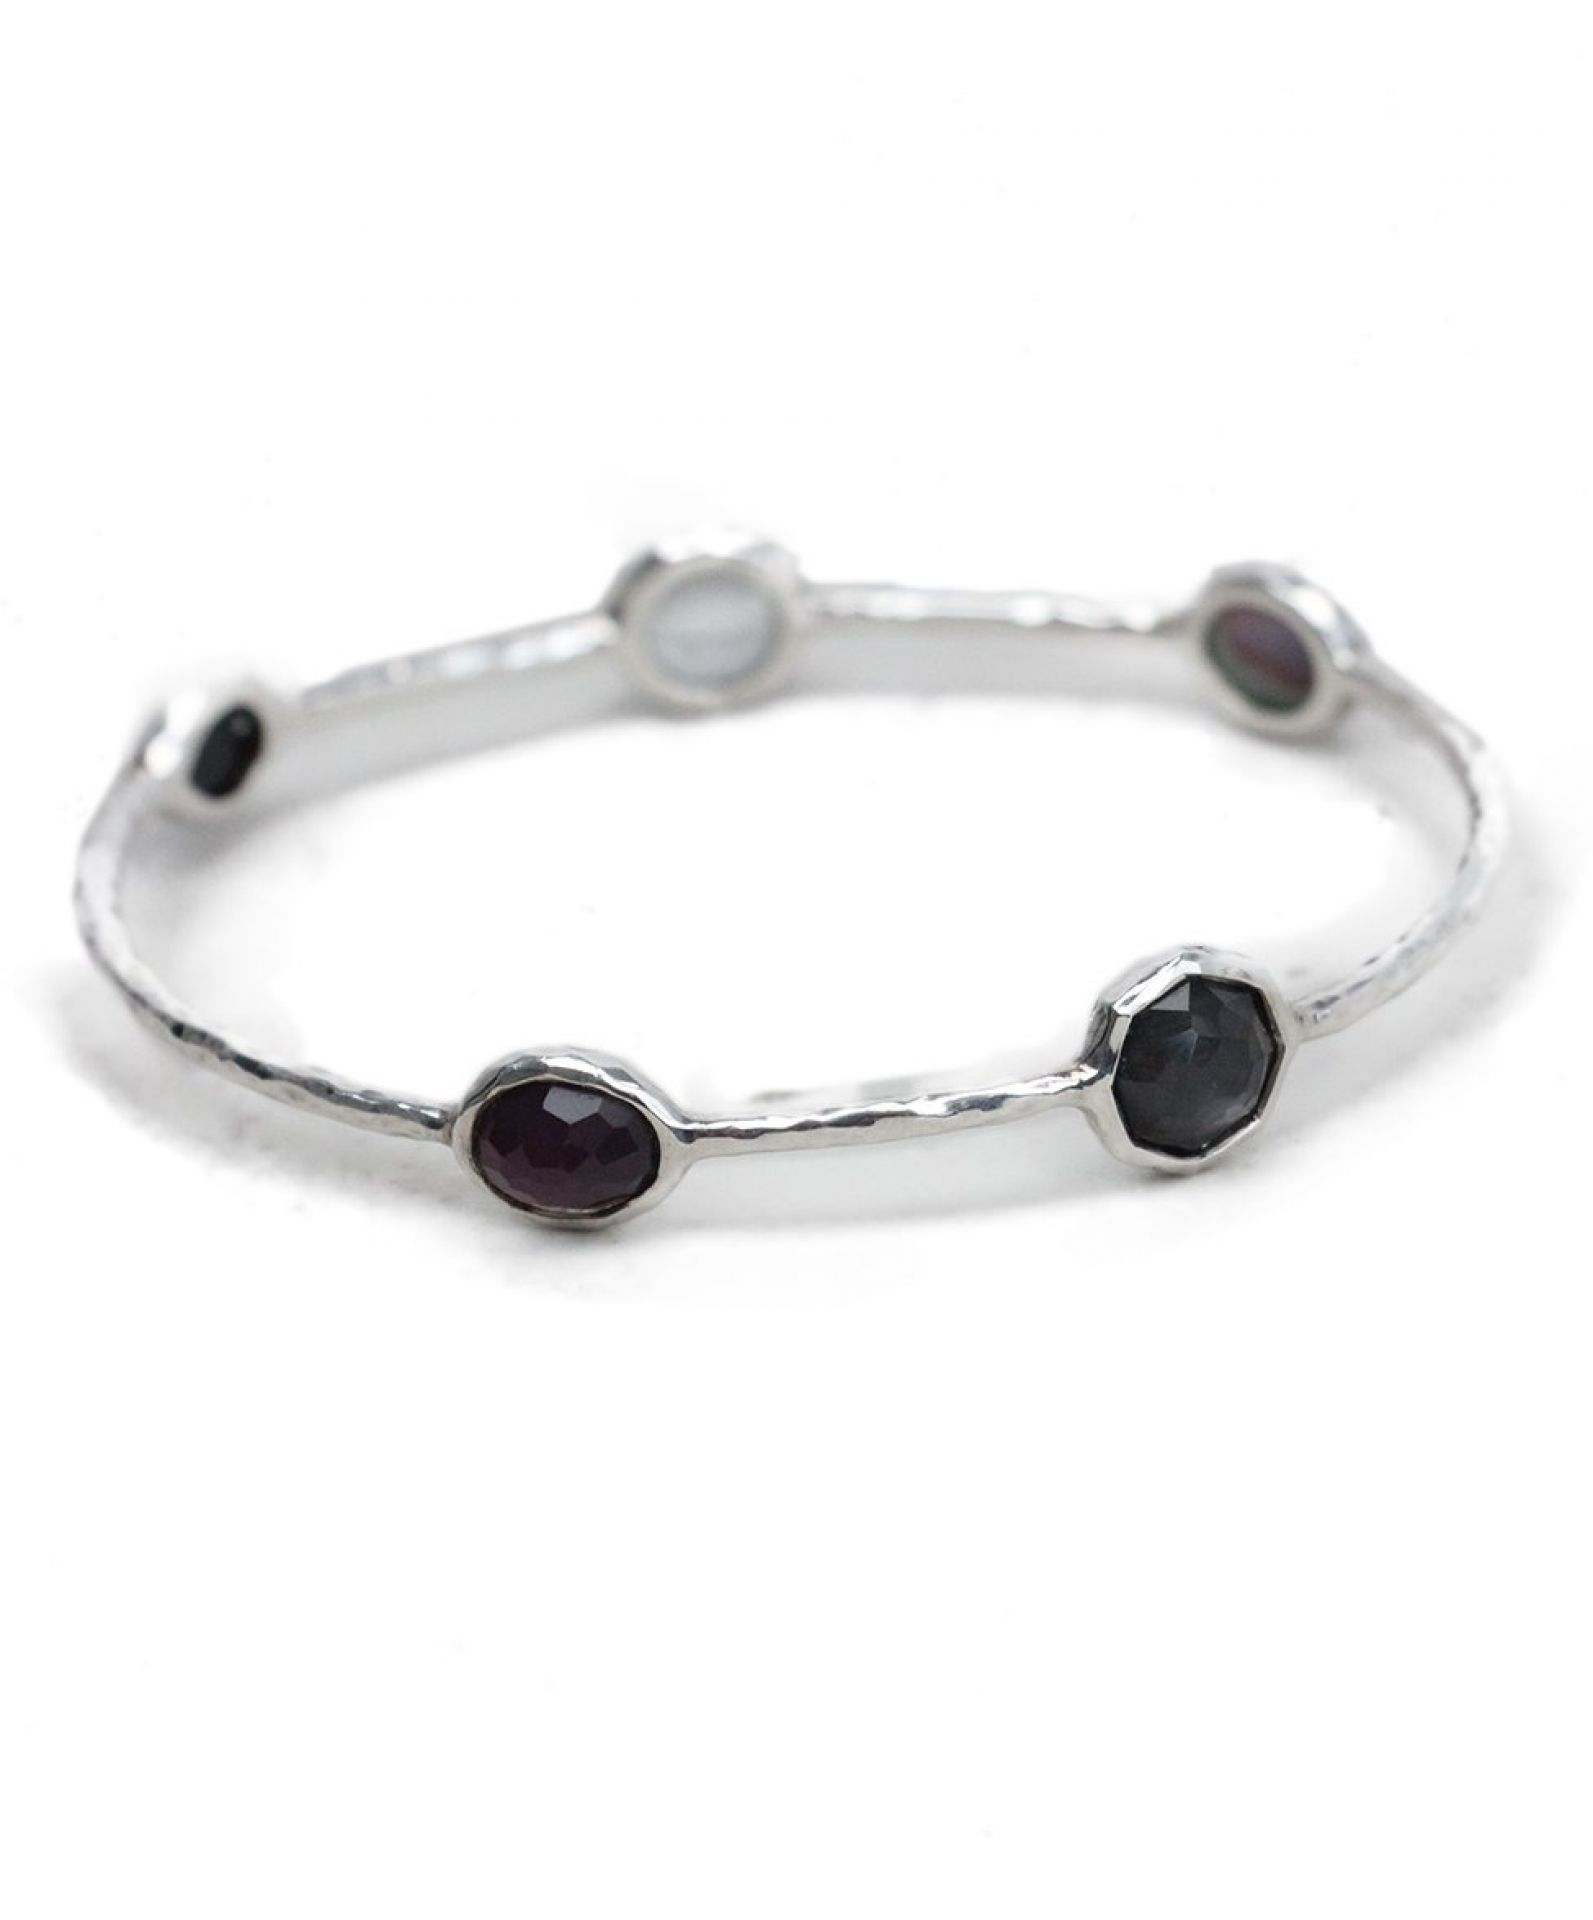 IPPOLITA PURPLE BLACK GREY STONE STERLING SILVER BANGLE BRACELET